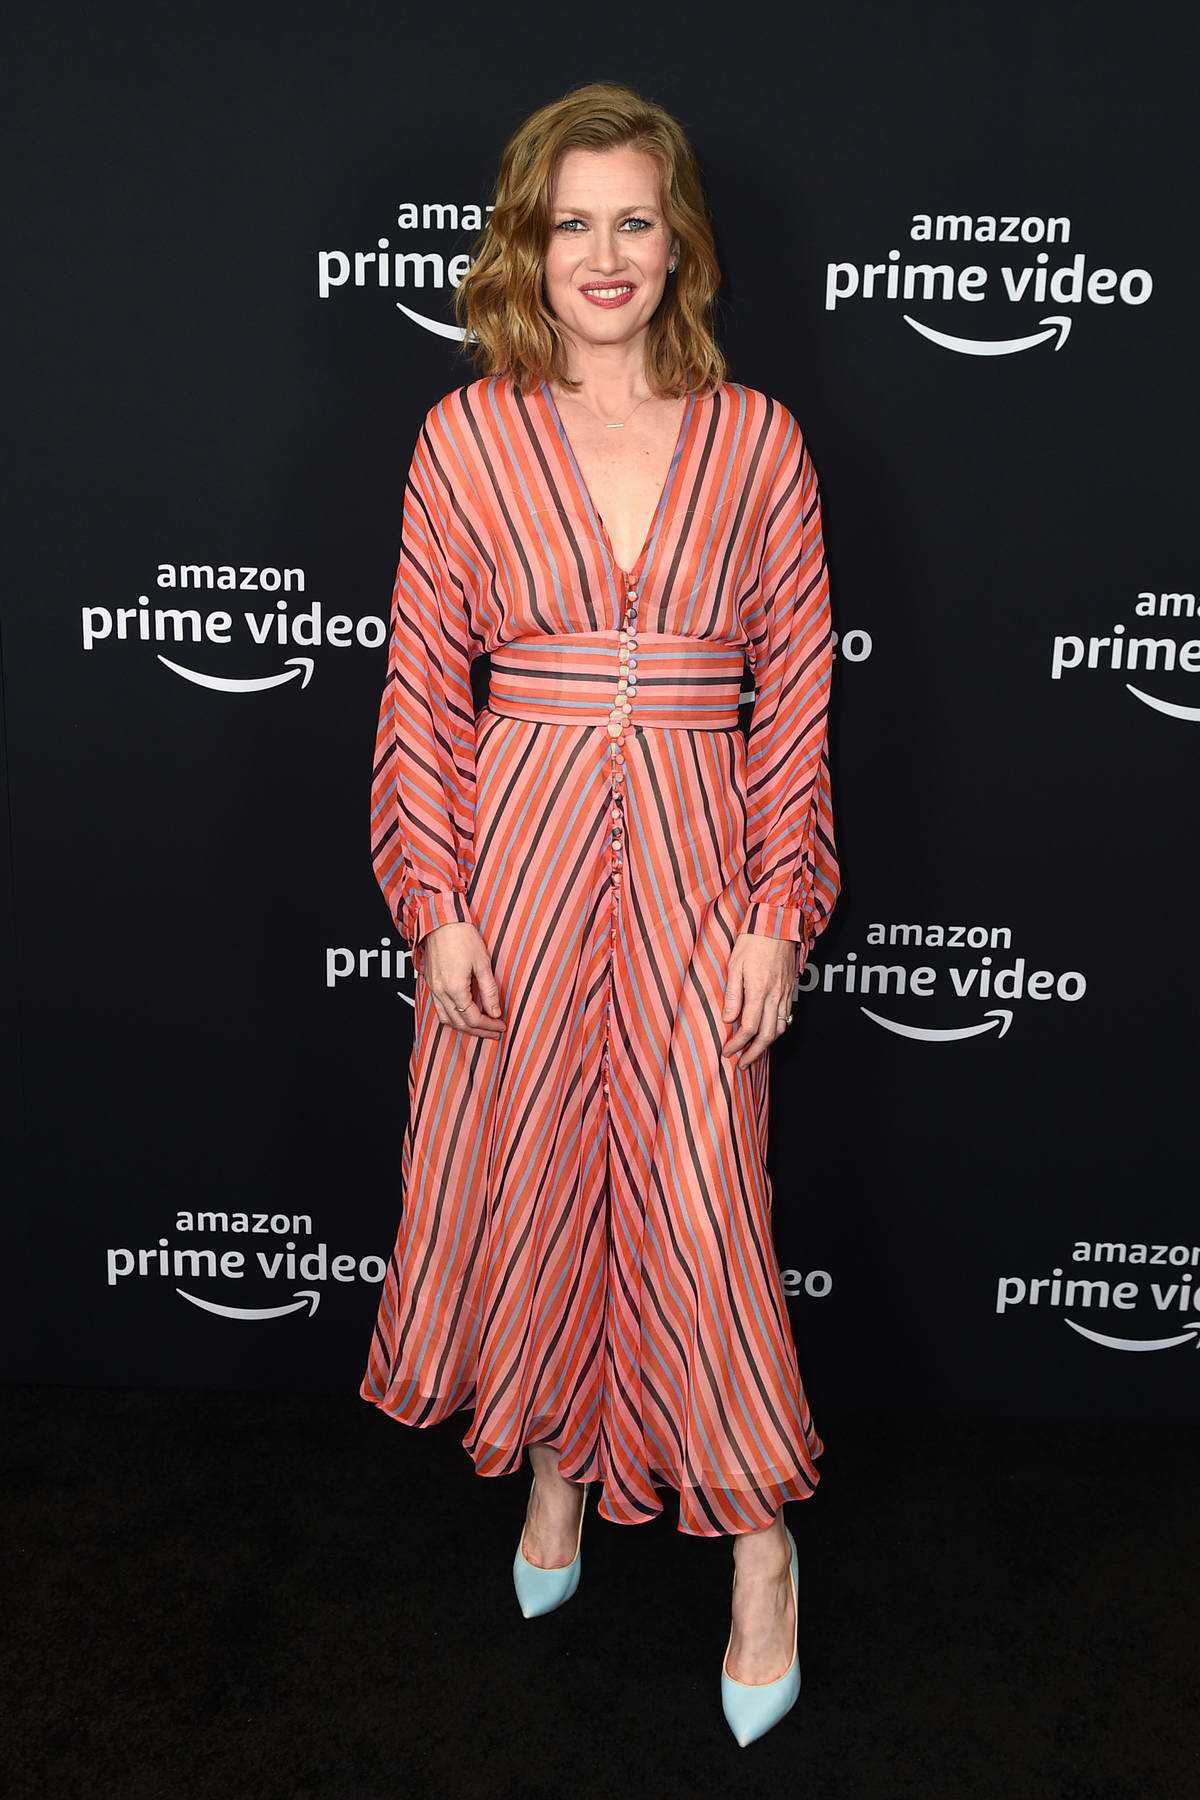 Mireille Enos attends the Amazon Hanna panel at the Winter TCA Press Tour in Pasadena, California